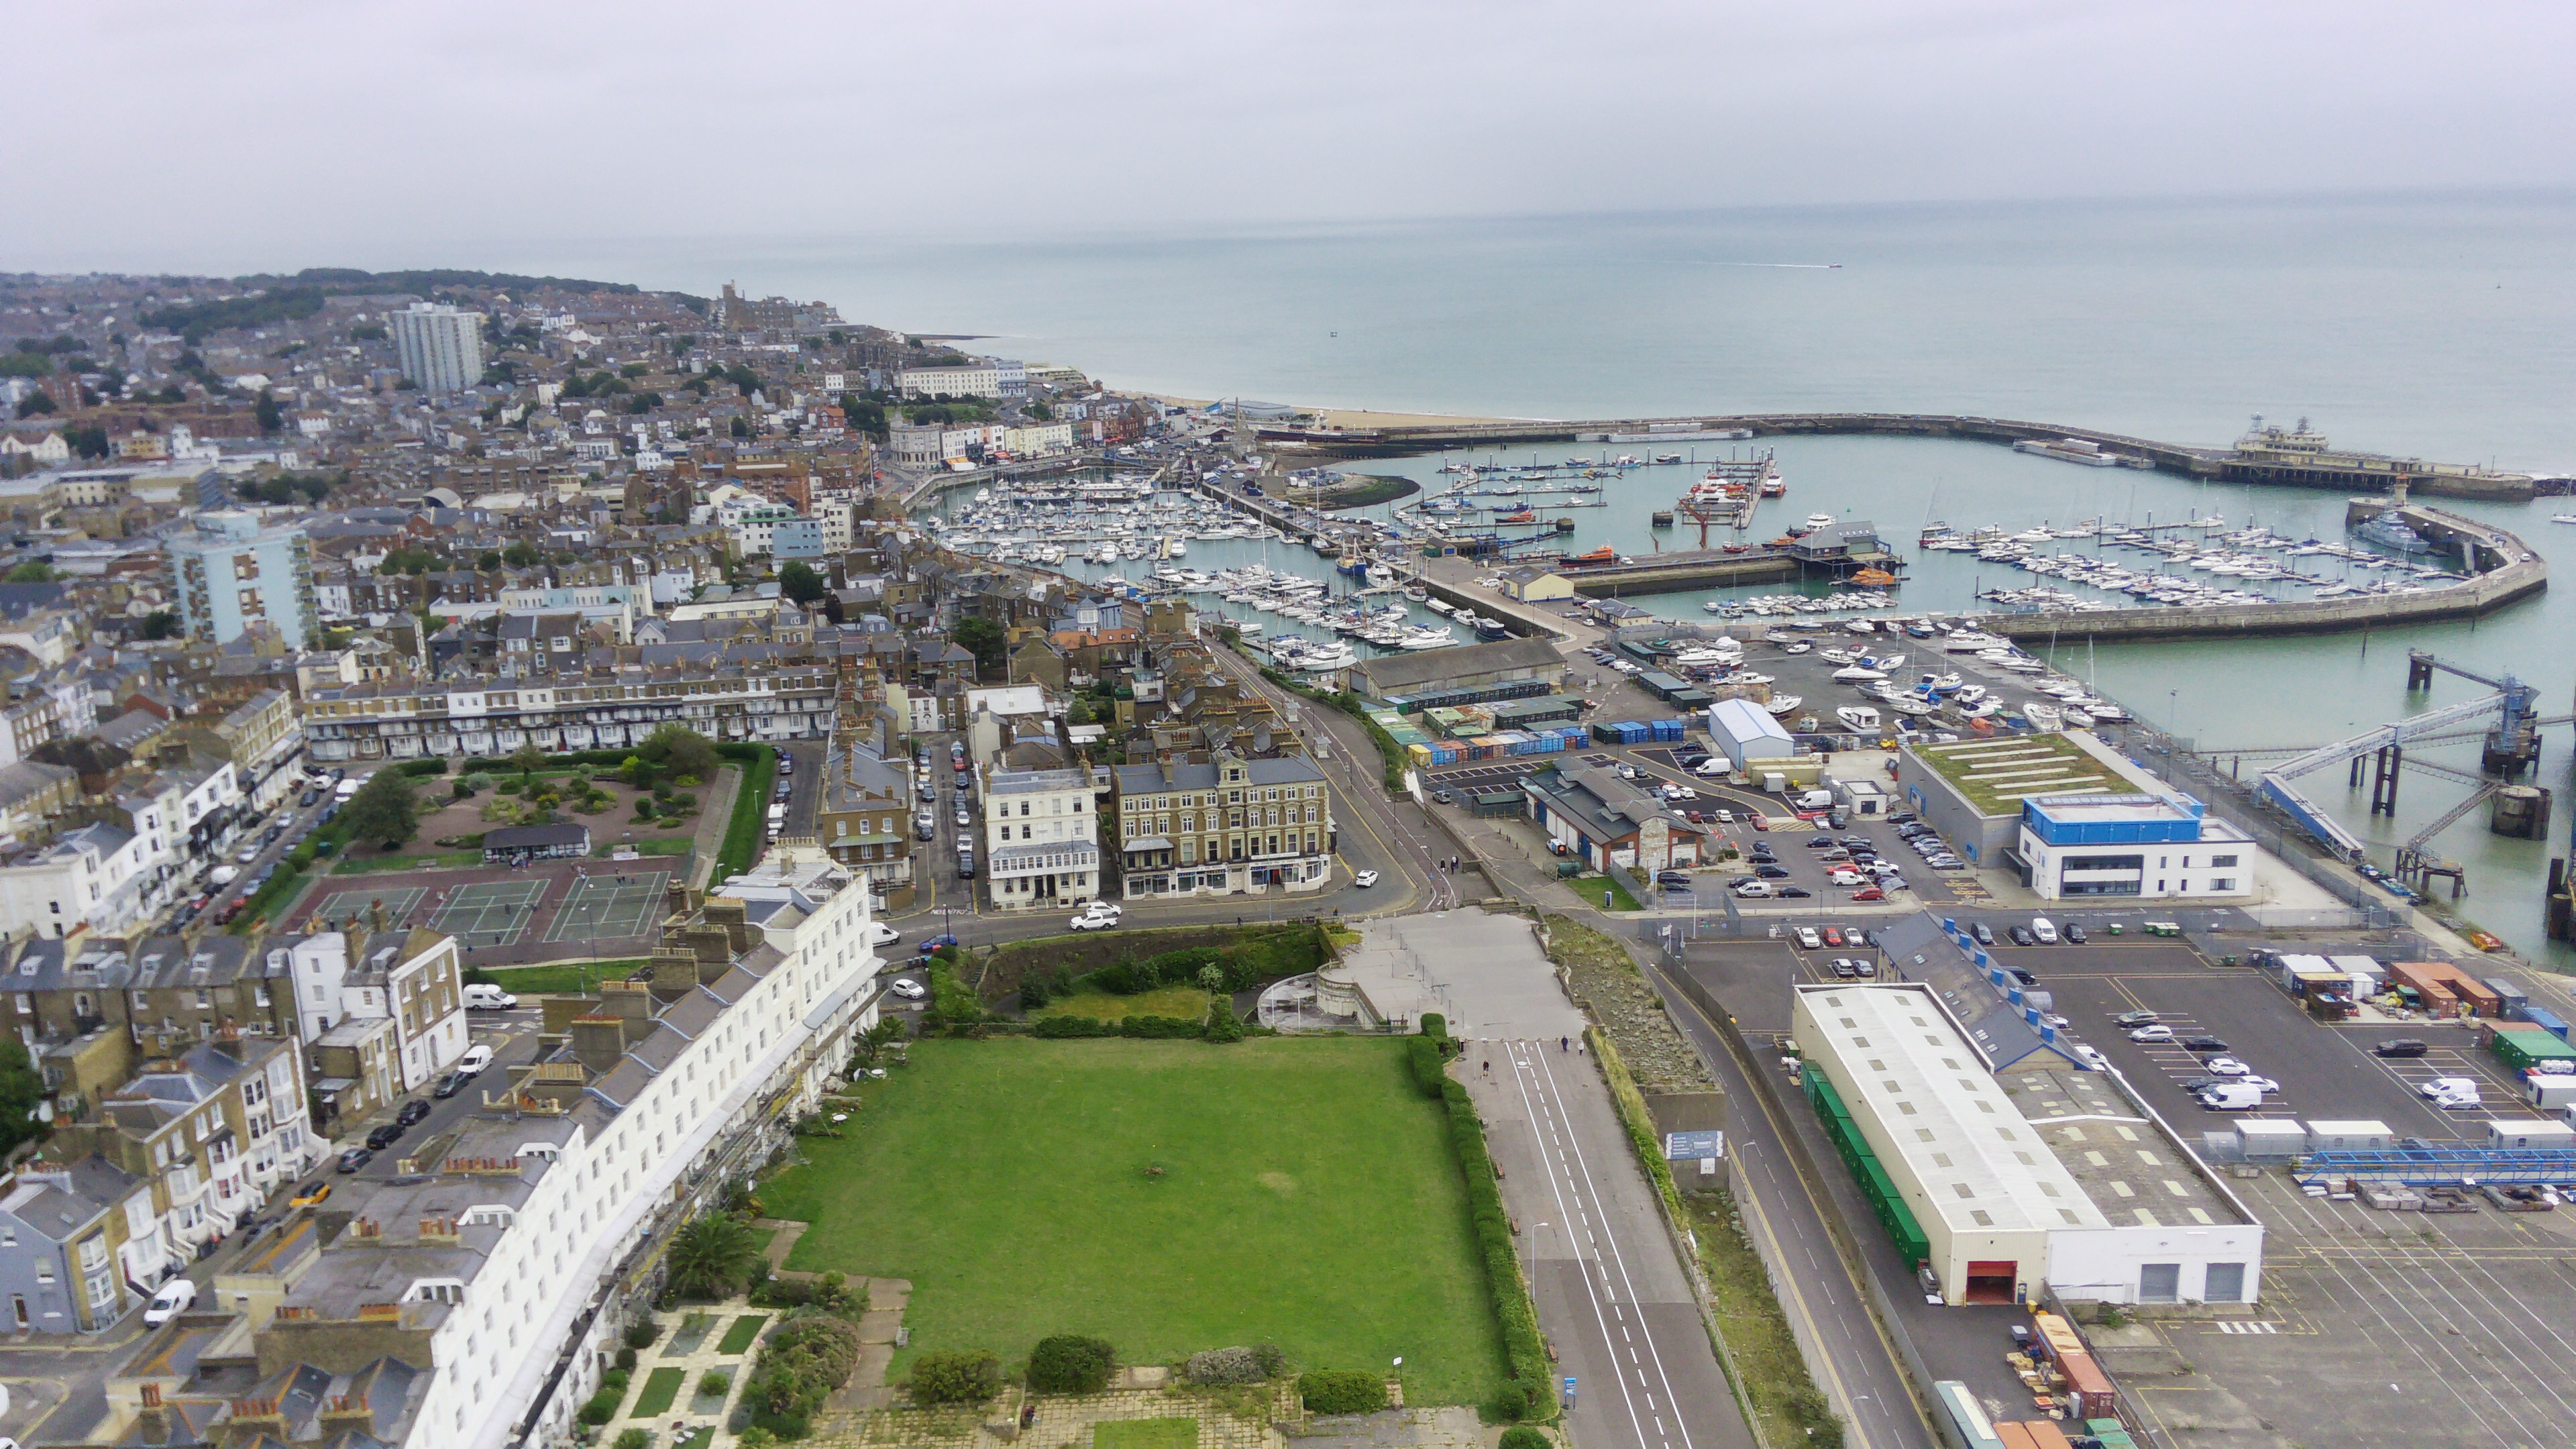 Aerial photos of Ramsgate in the UK taken on the FIMI X8 Mini